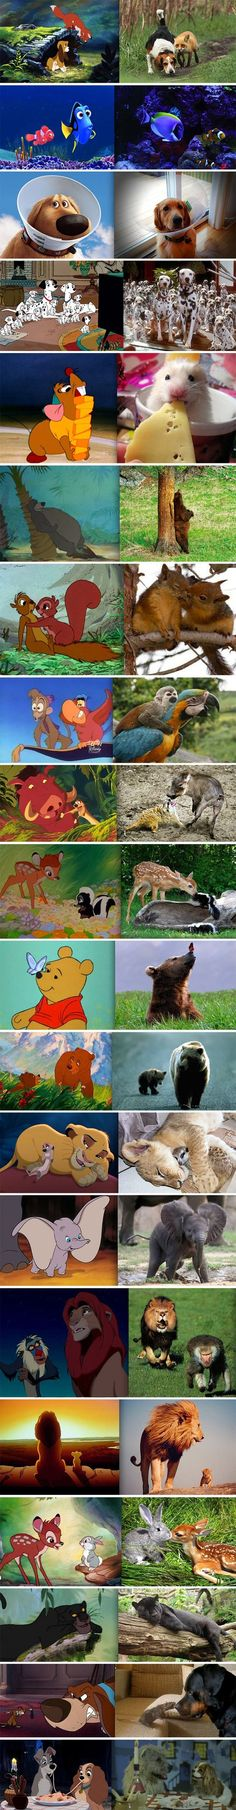 disney movies, animals, real life, the real, disney couples, art, childhood, lions, disney characters